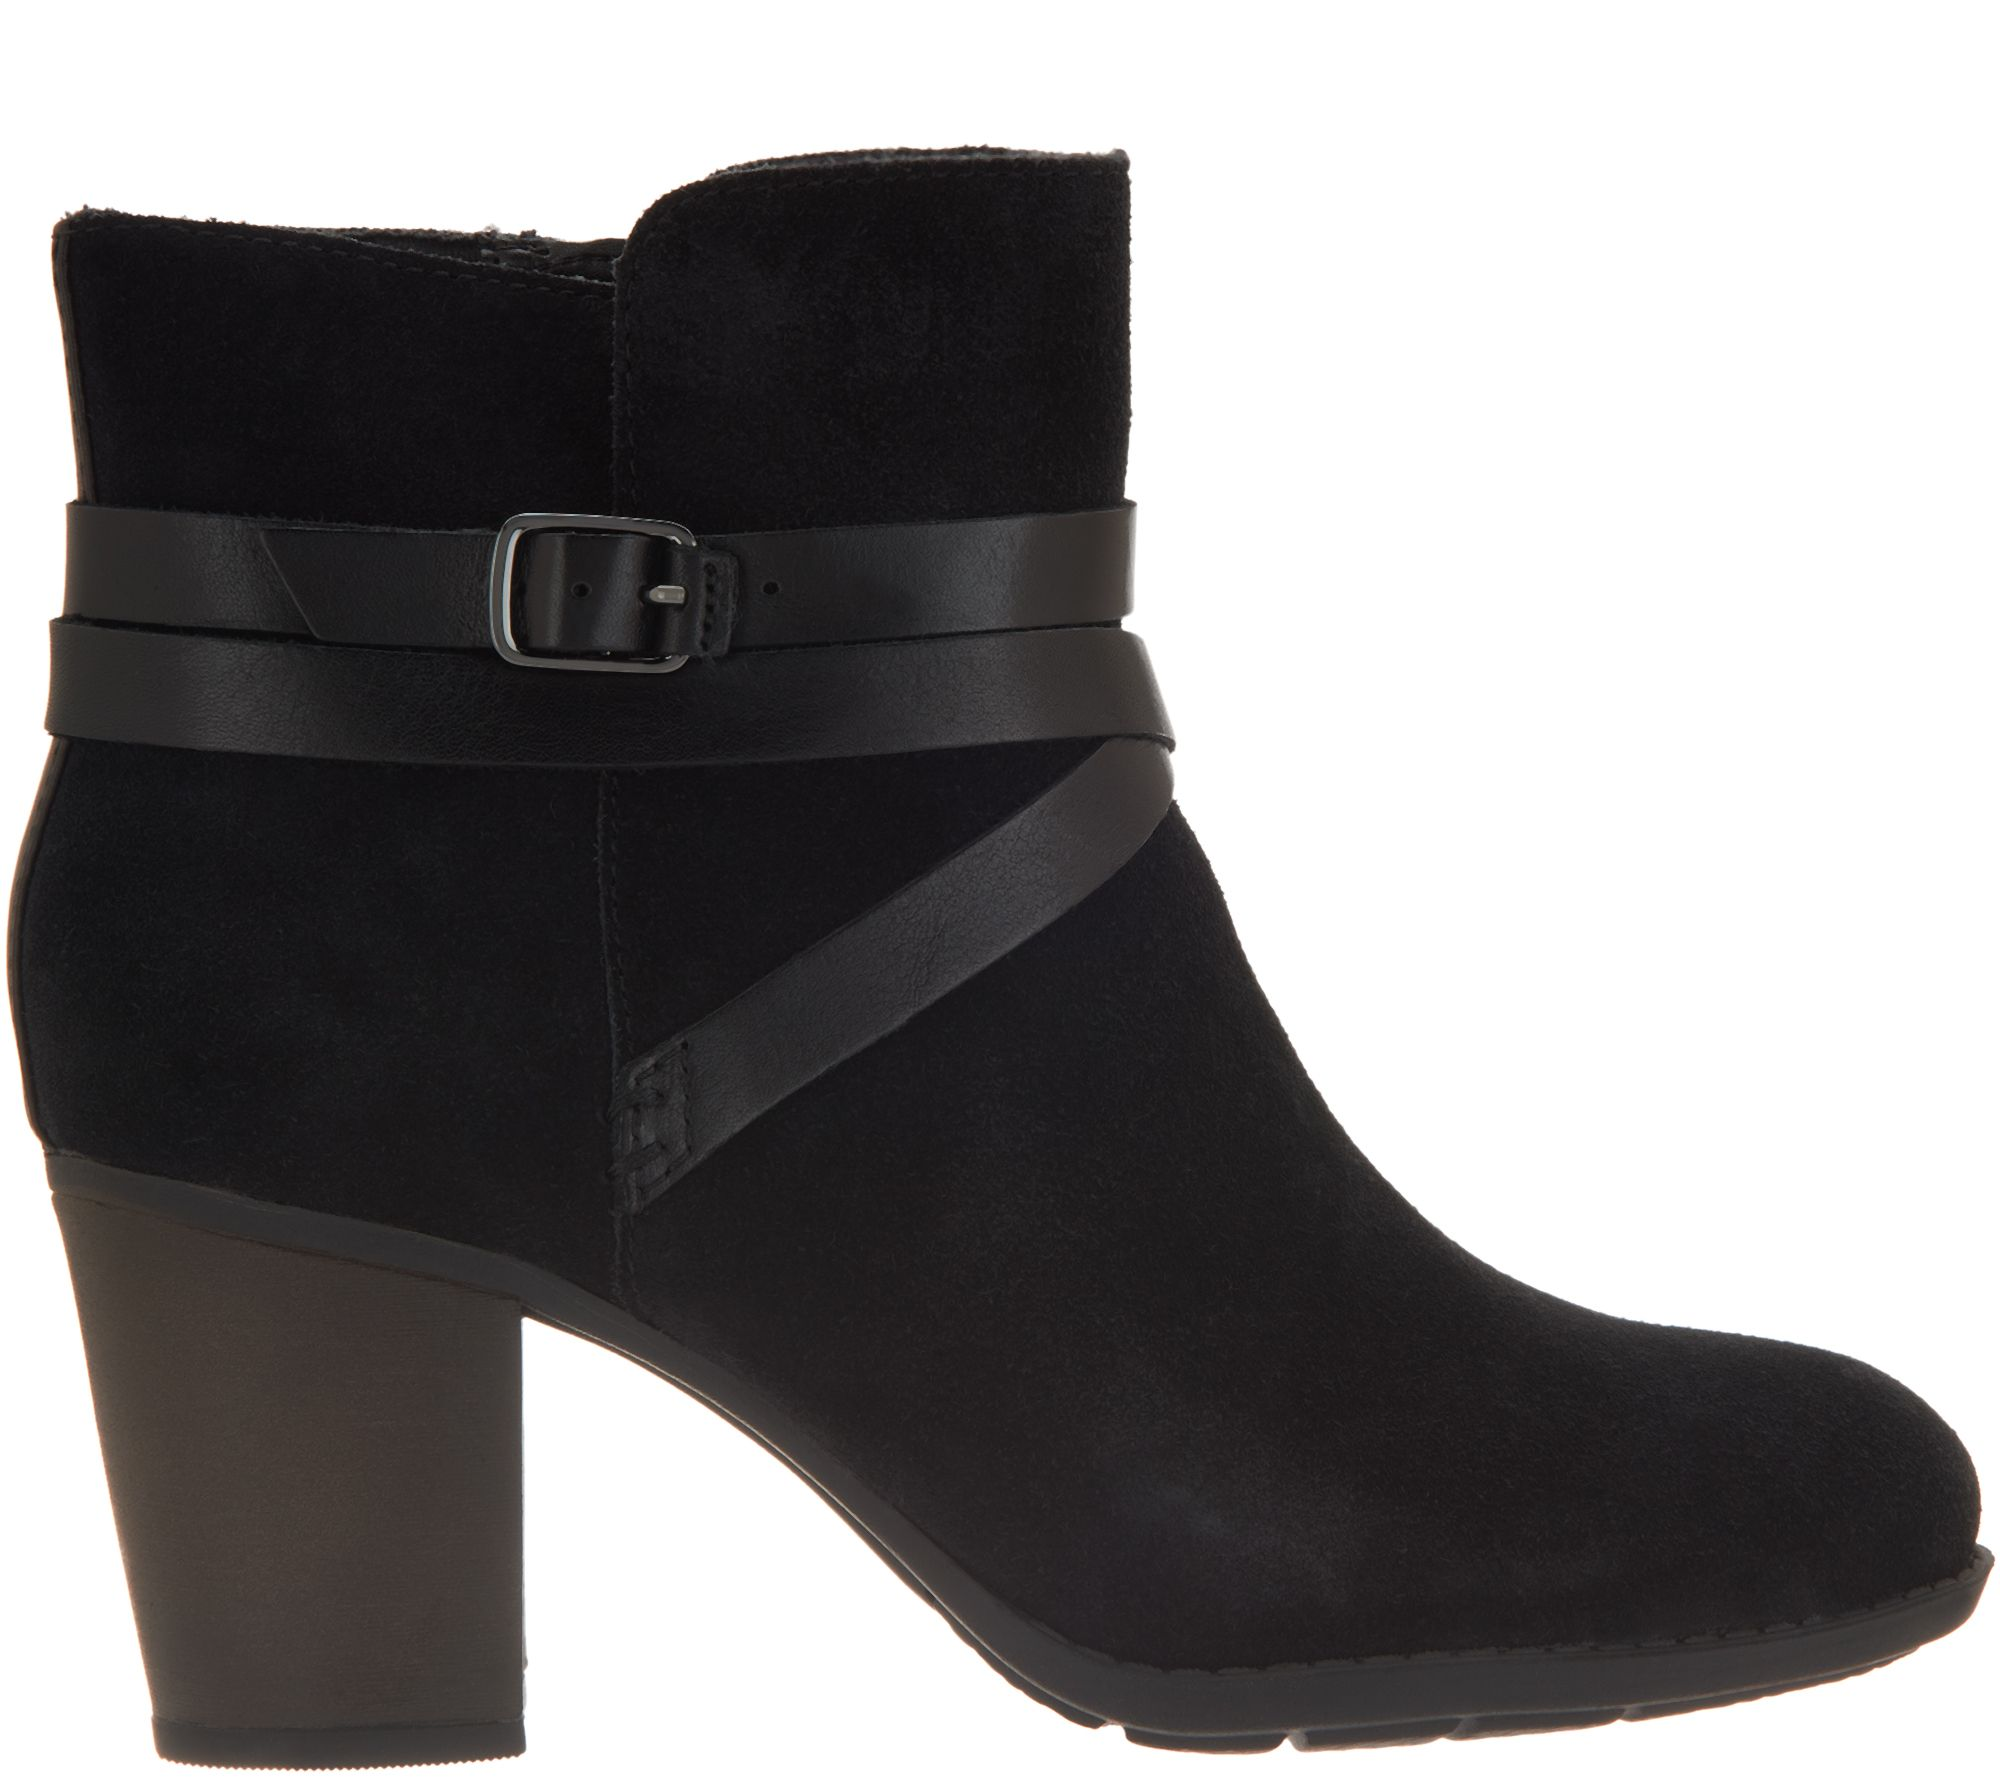 d756baffe60 Clarks Collection Suede Ankle Boots Enfield Coco — QVC.com